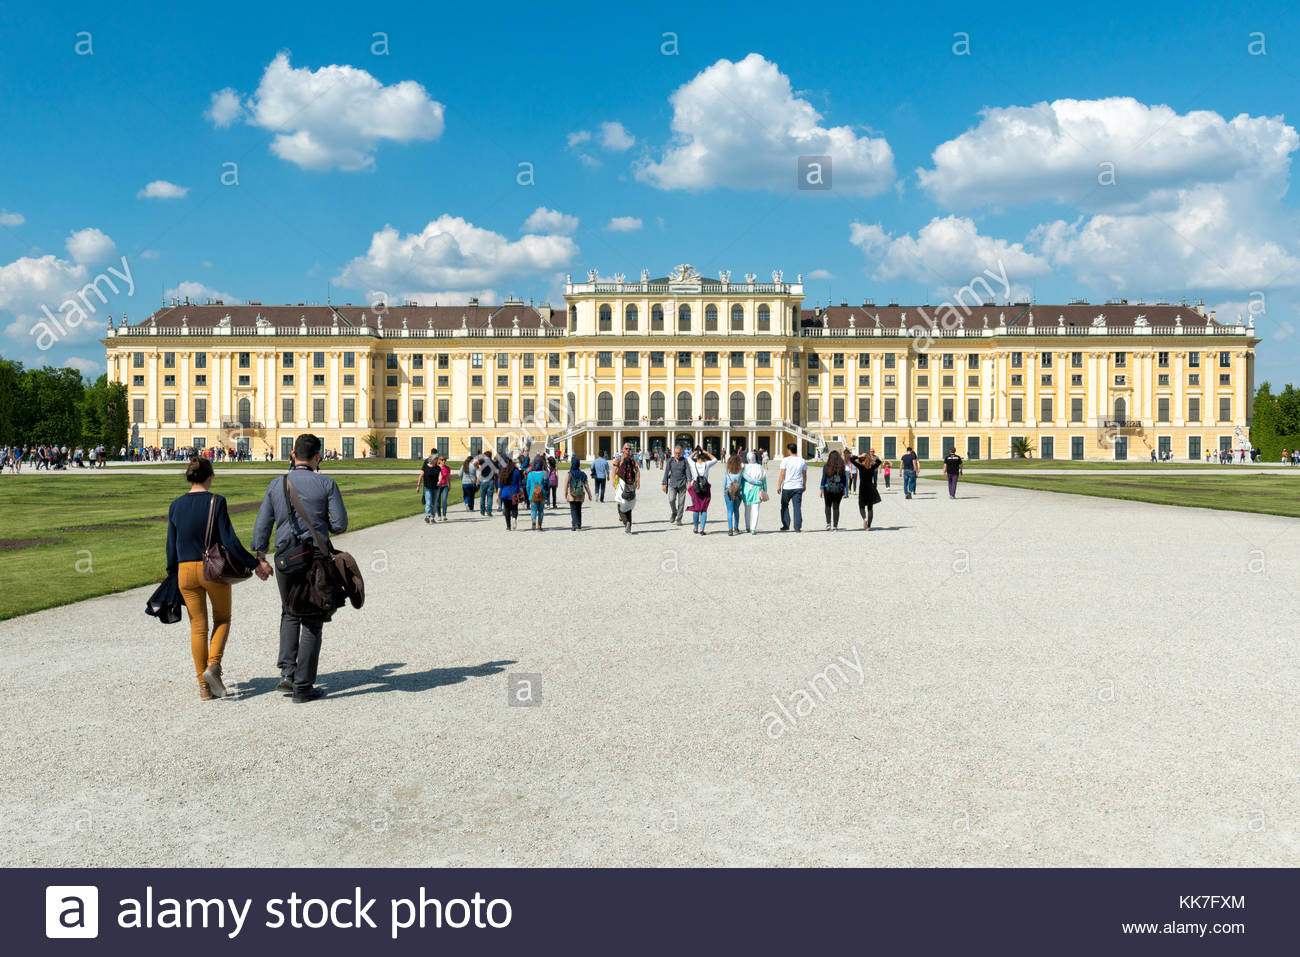 Tourists in front of Schönbrunn Palace enjoying the beautiful day - Stock Image